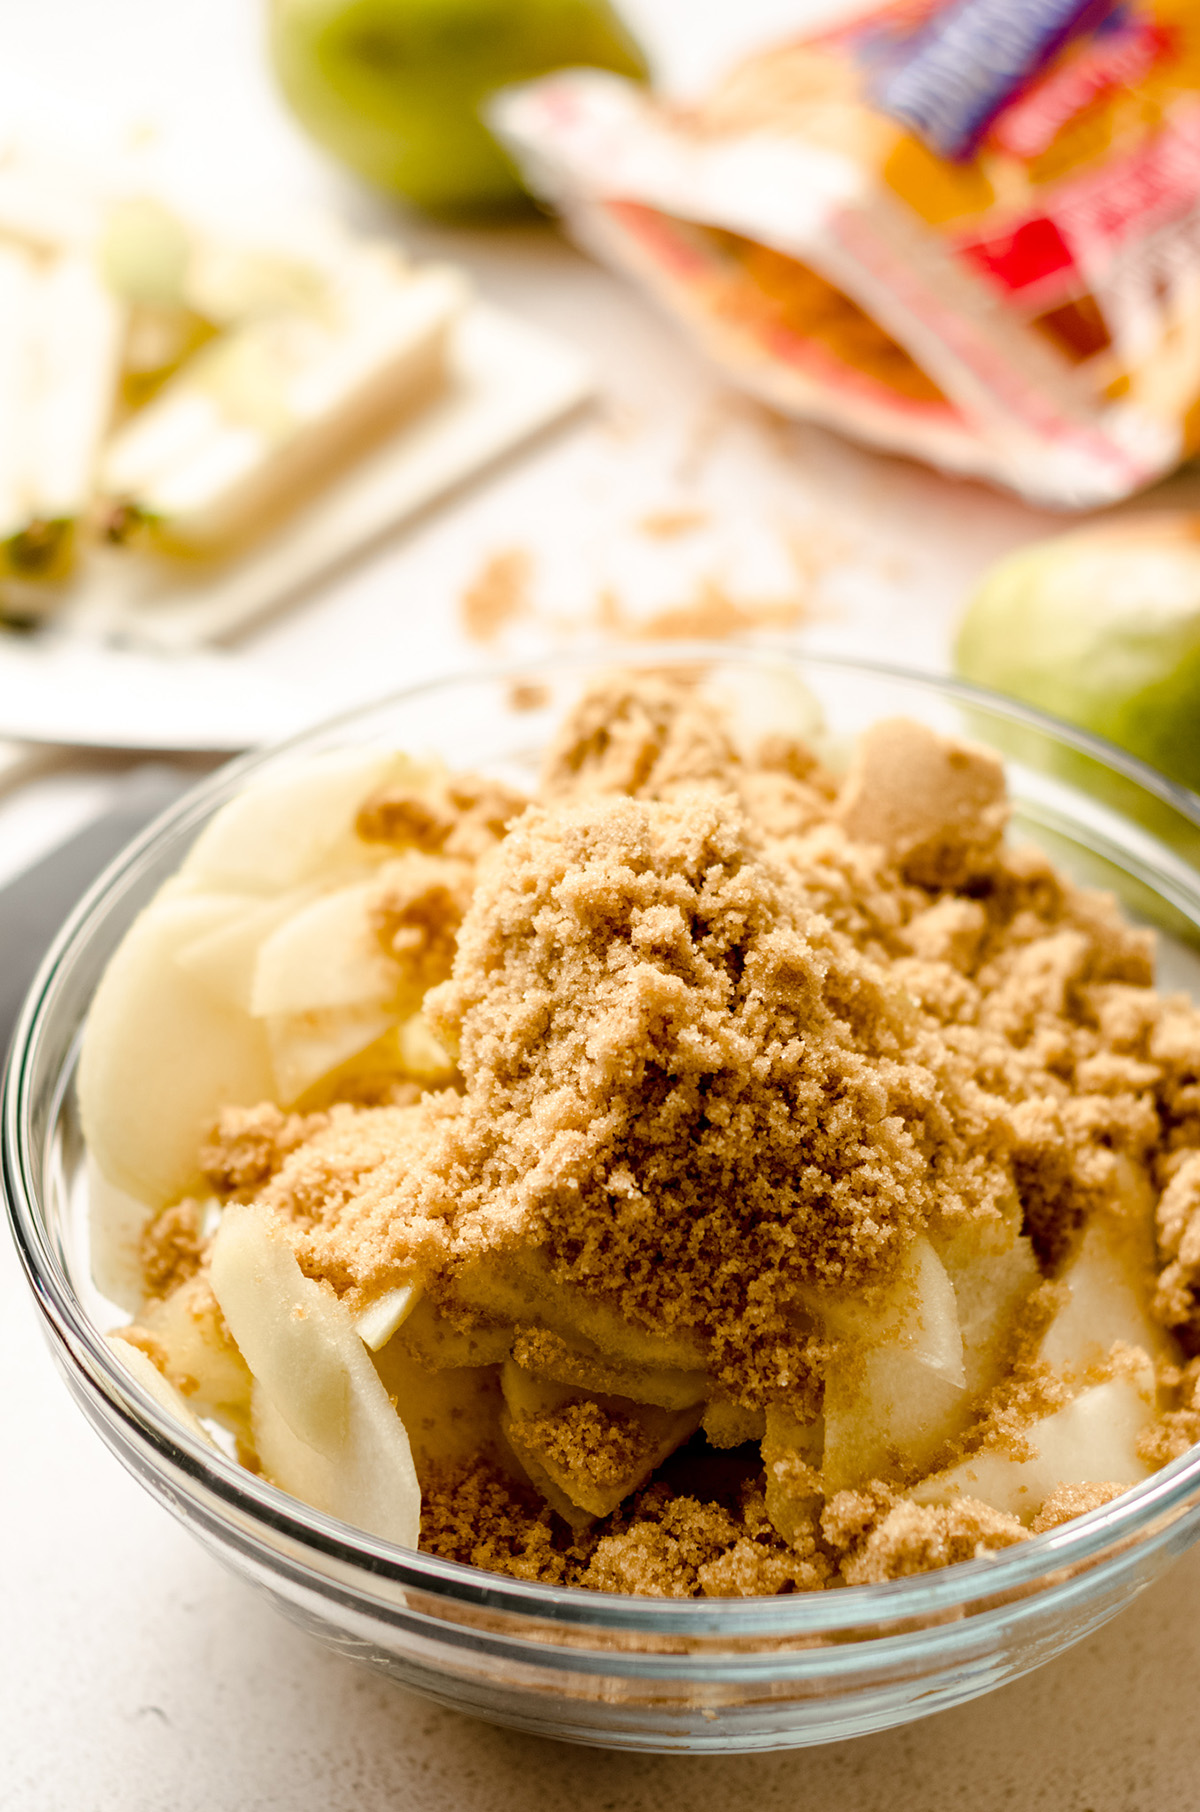 sliced pears in a bowl with cinnamon and brown sugar